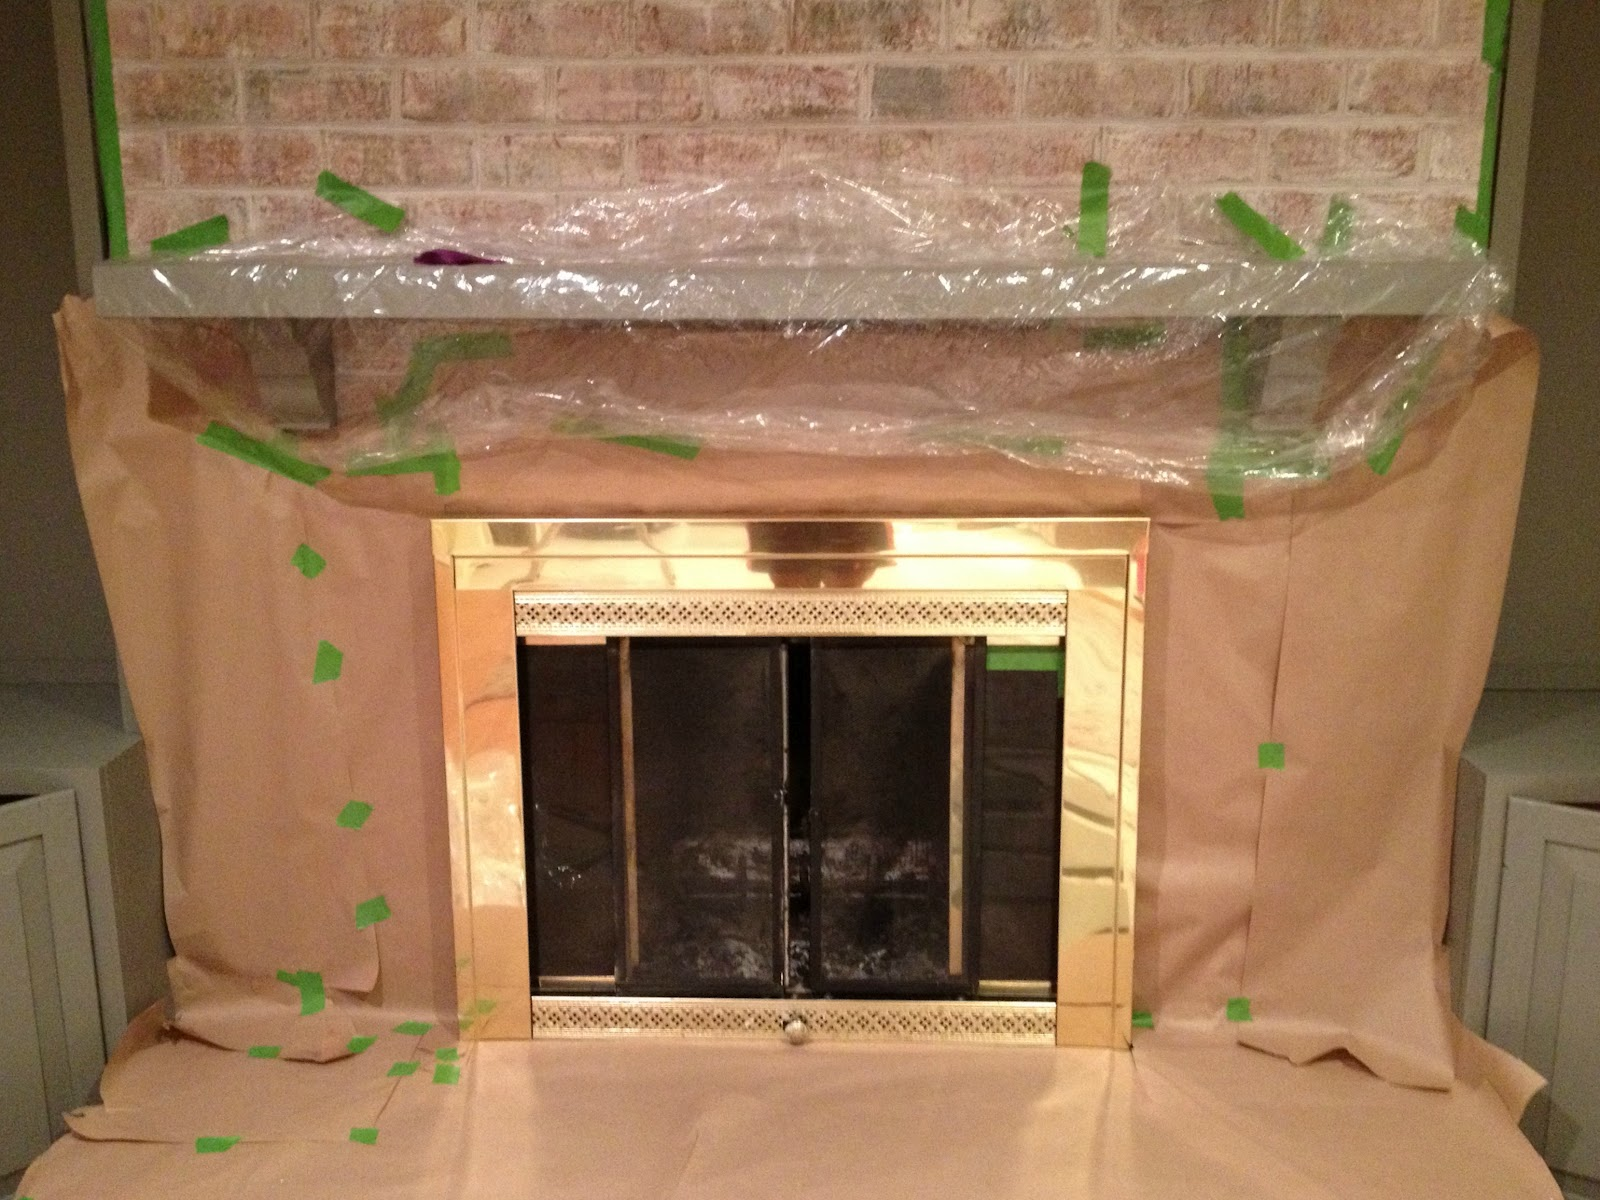 Brass fireplace update east coast creative blog for the glass doors we used more tape and paper i found that if i used a spatula i could get the tape really close to the edges for a perfect eventshaper